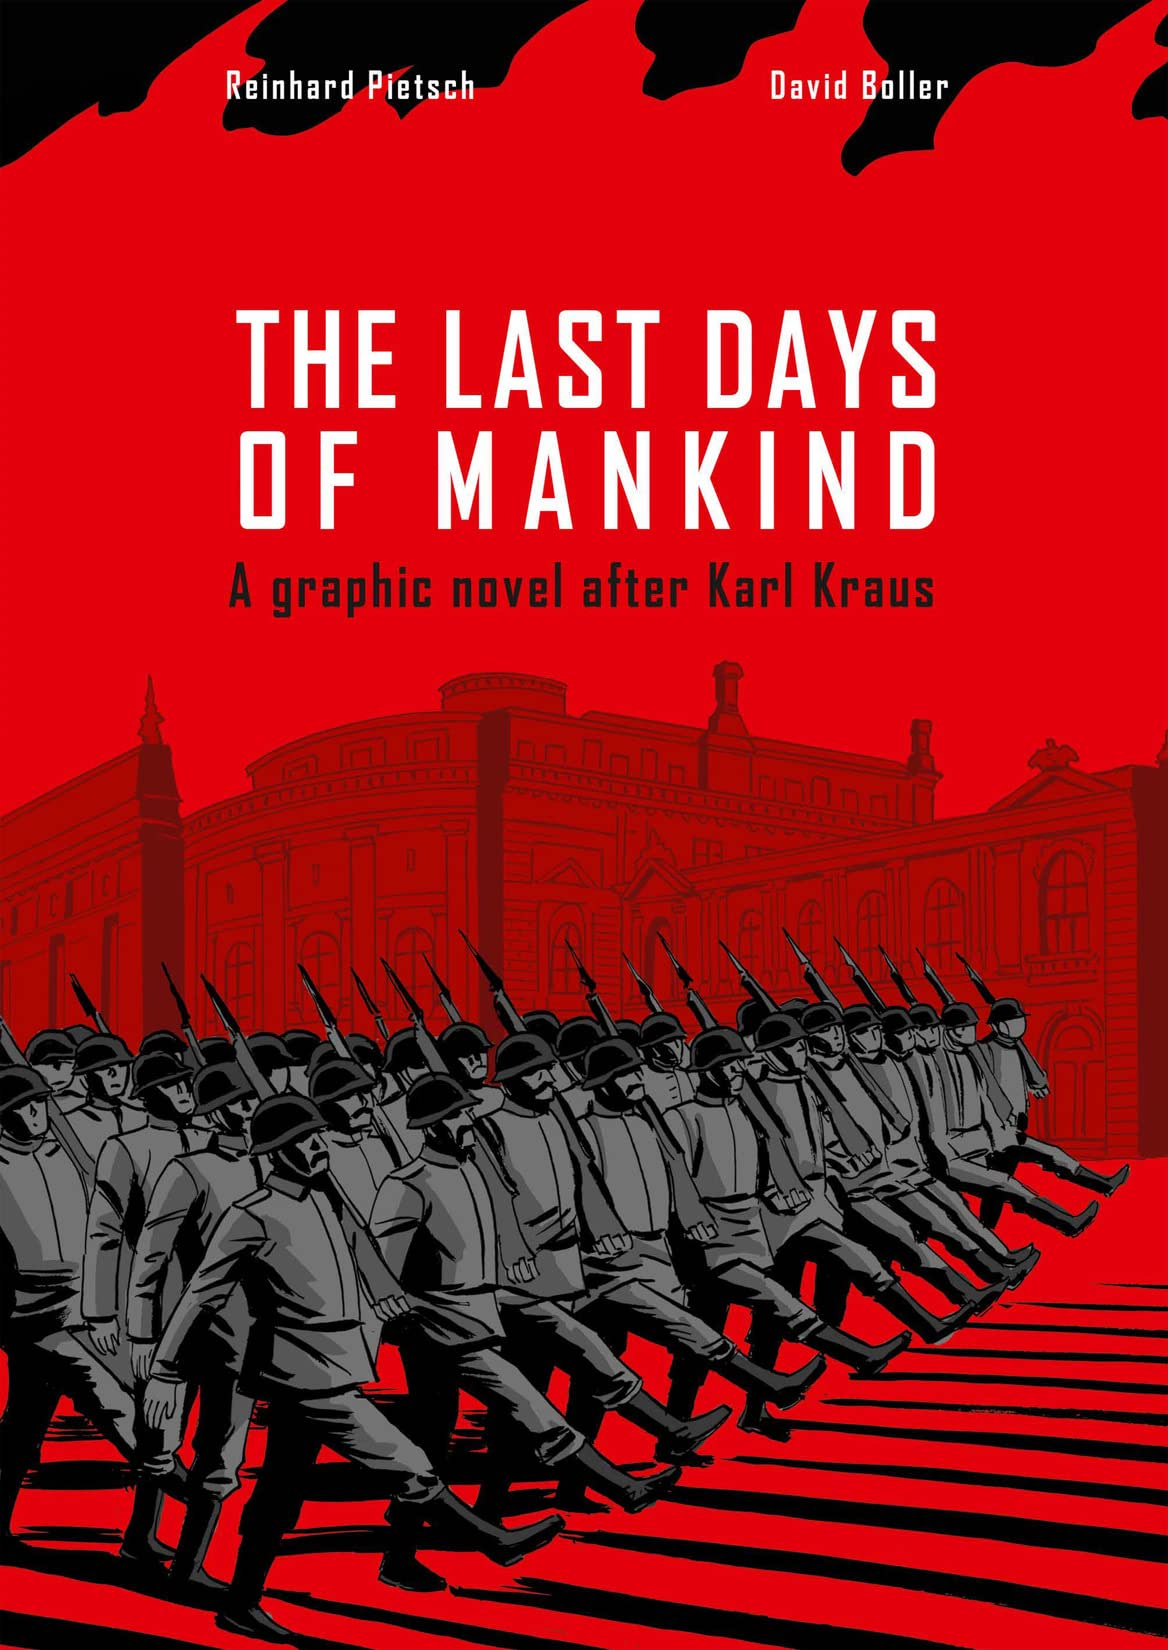 The Last Days of Mankind